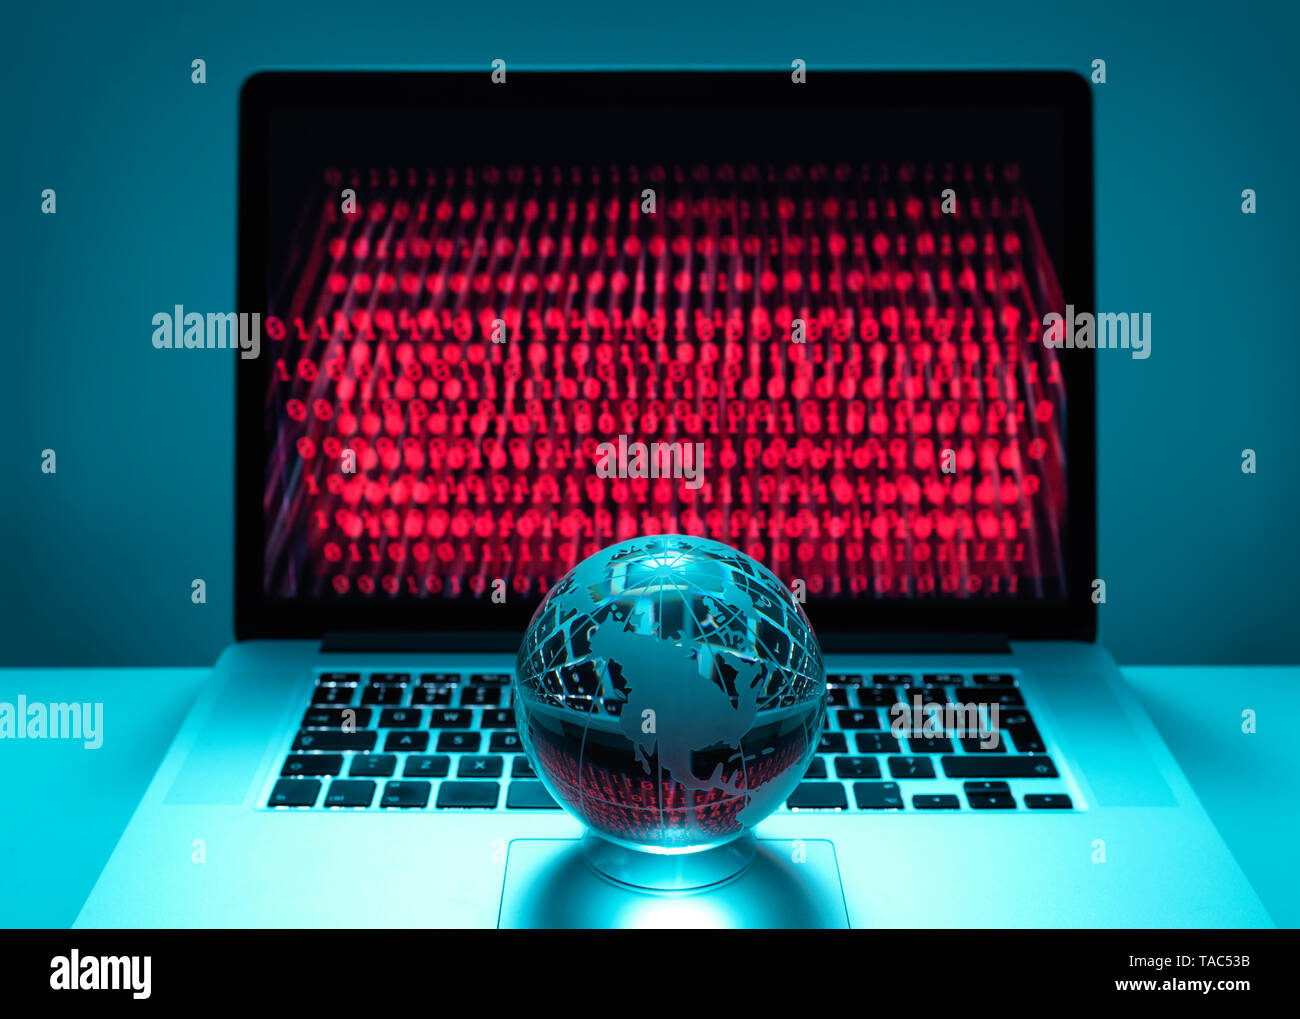 Globe illustrating the Americas on a laptop computer with screen been infected by a cyber attack Stock Photo